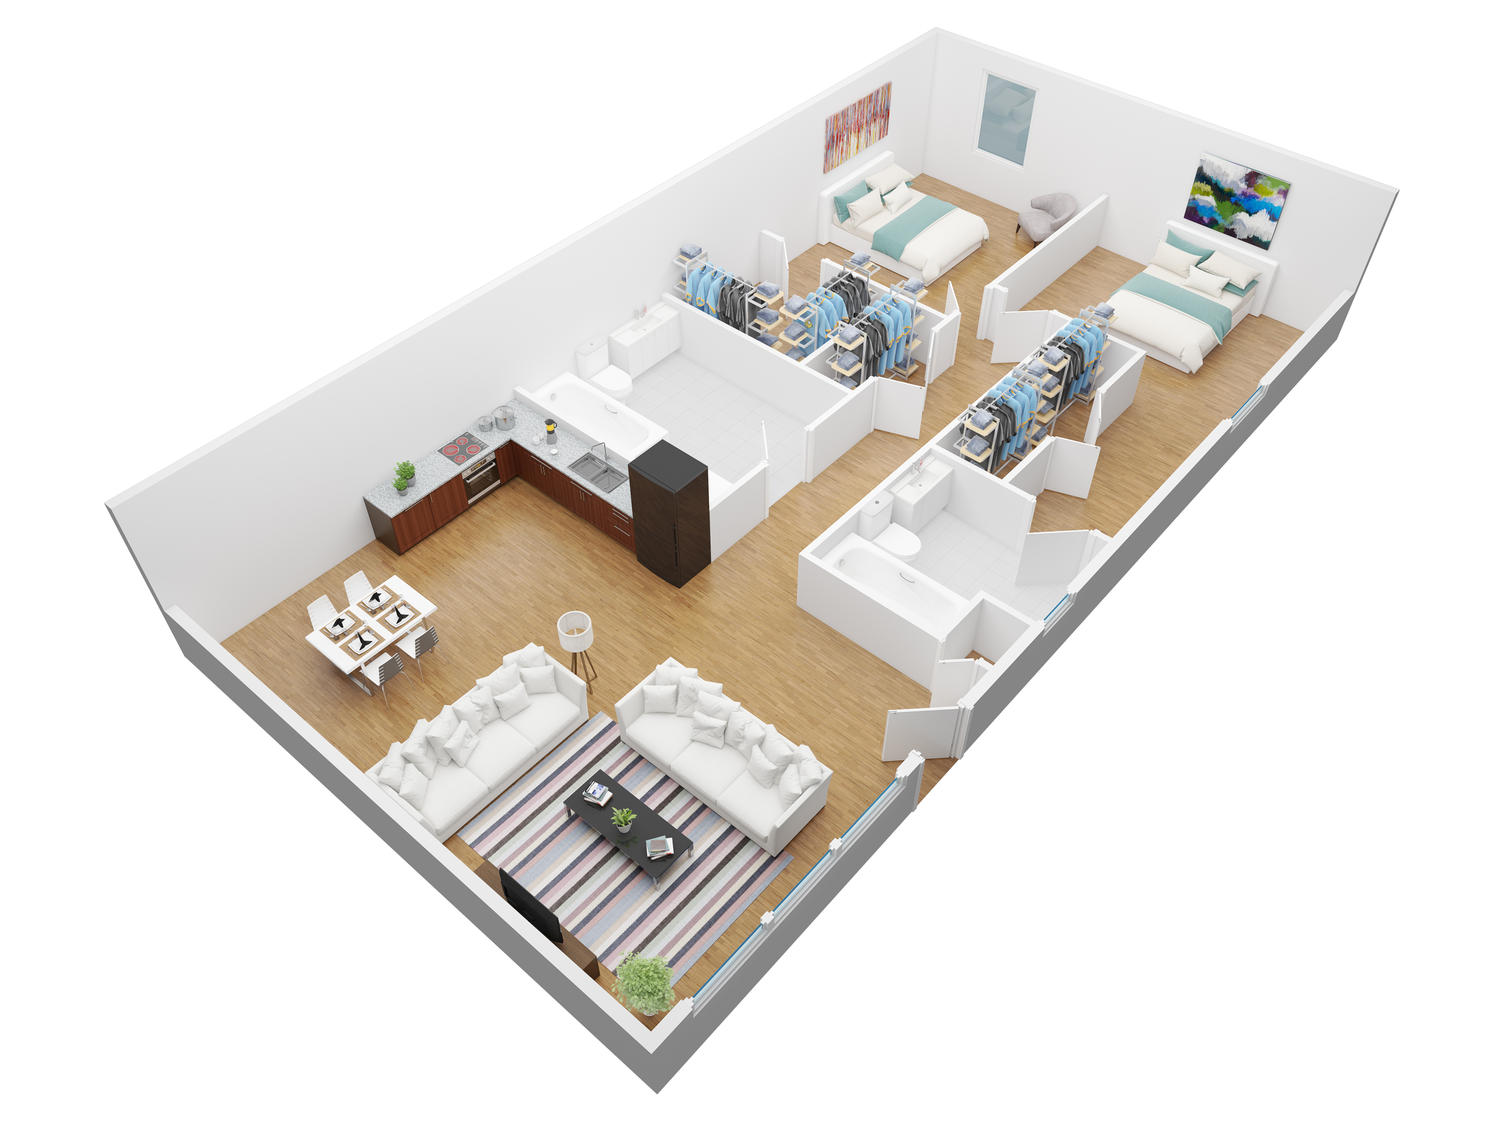 3d Planer 3d Floor Plan Modeling And Rendering By Vertex Design On